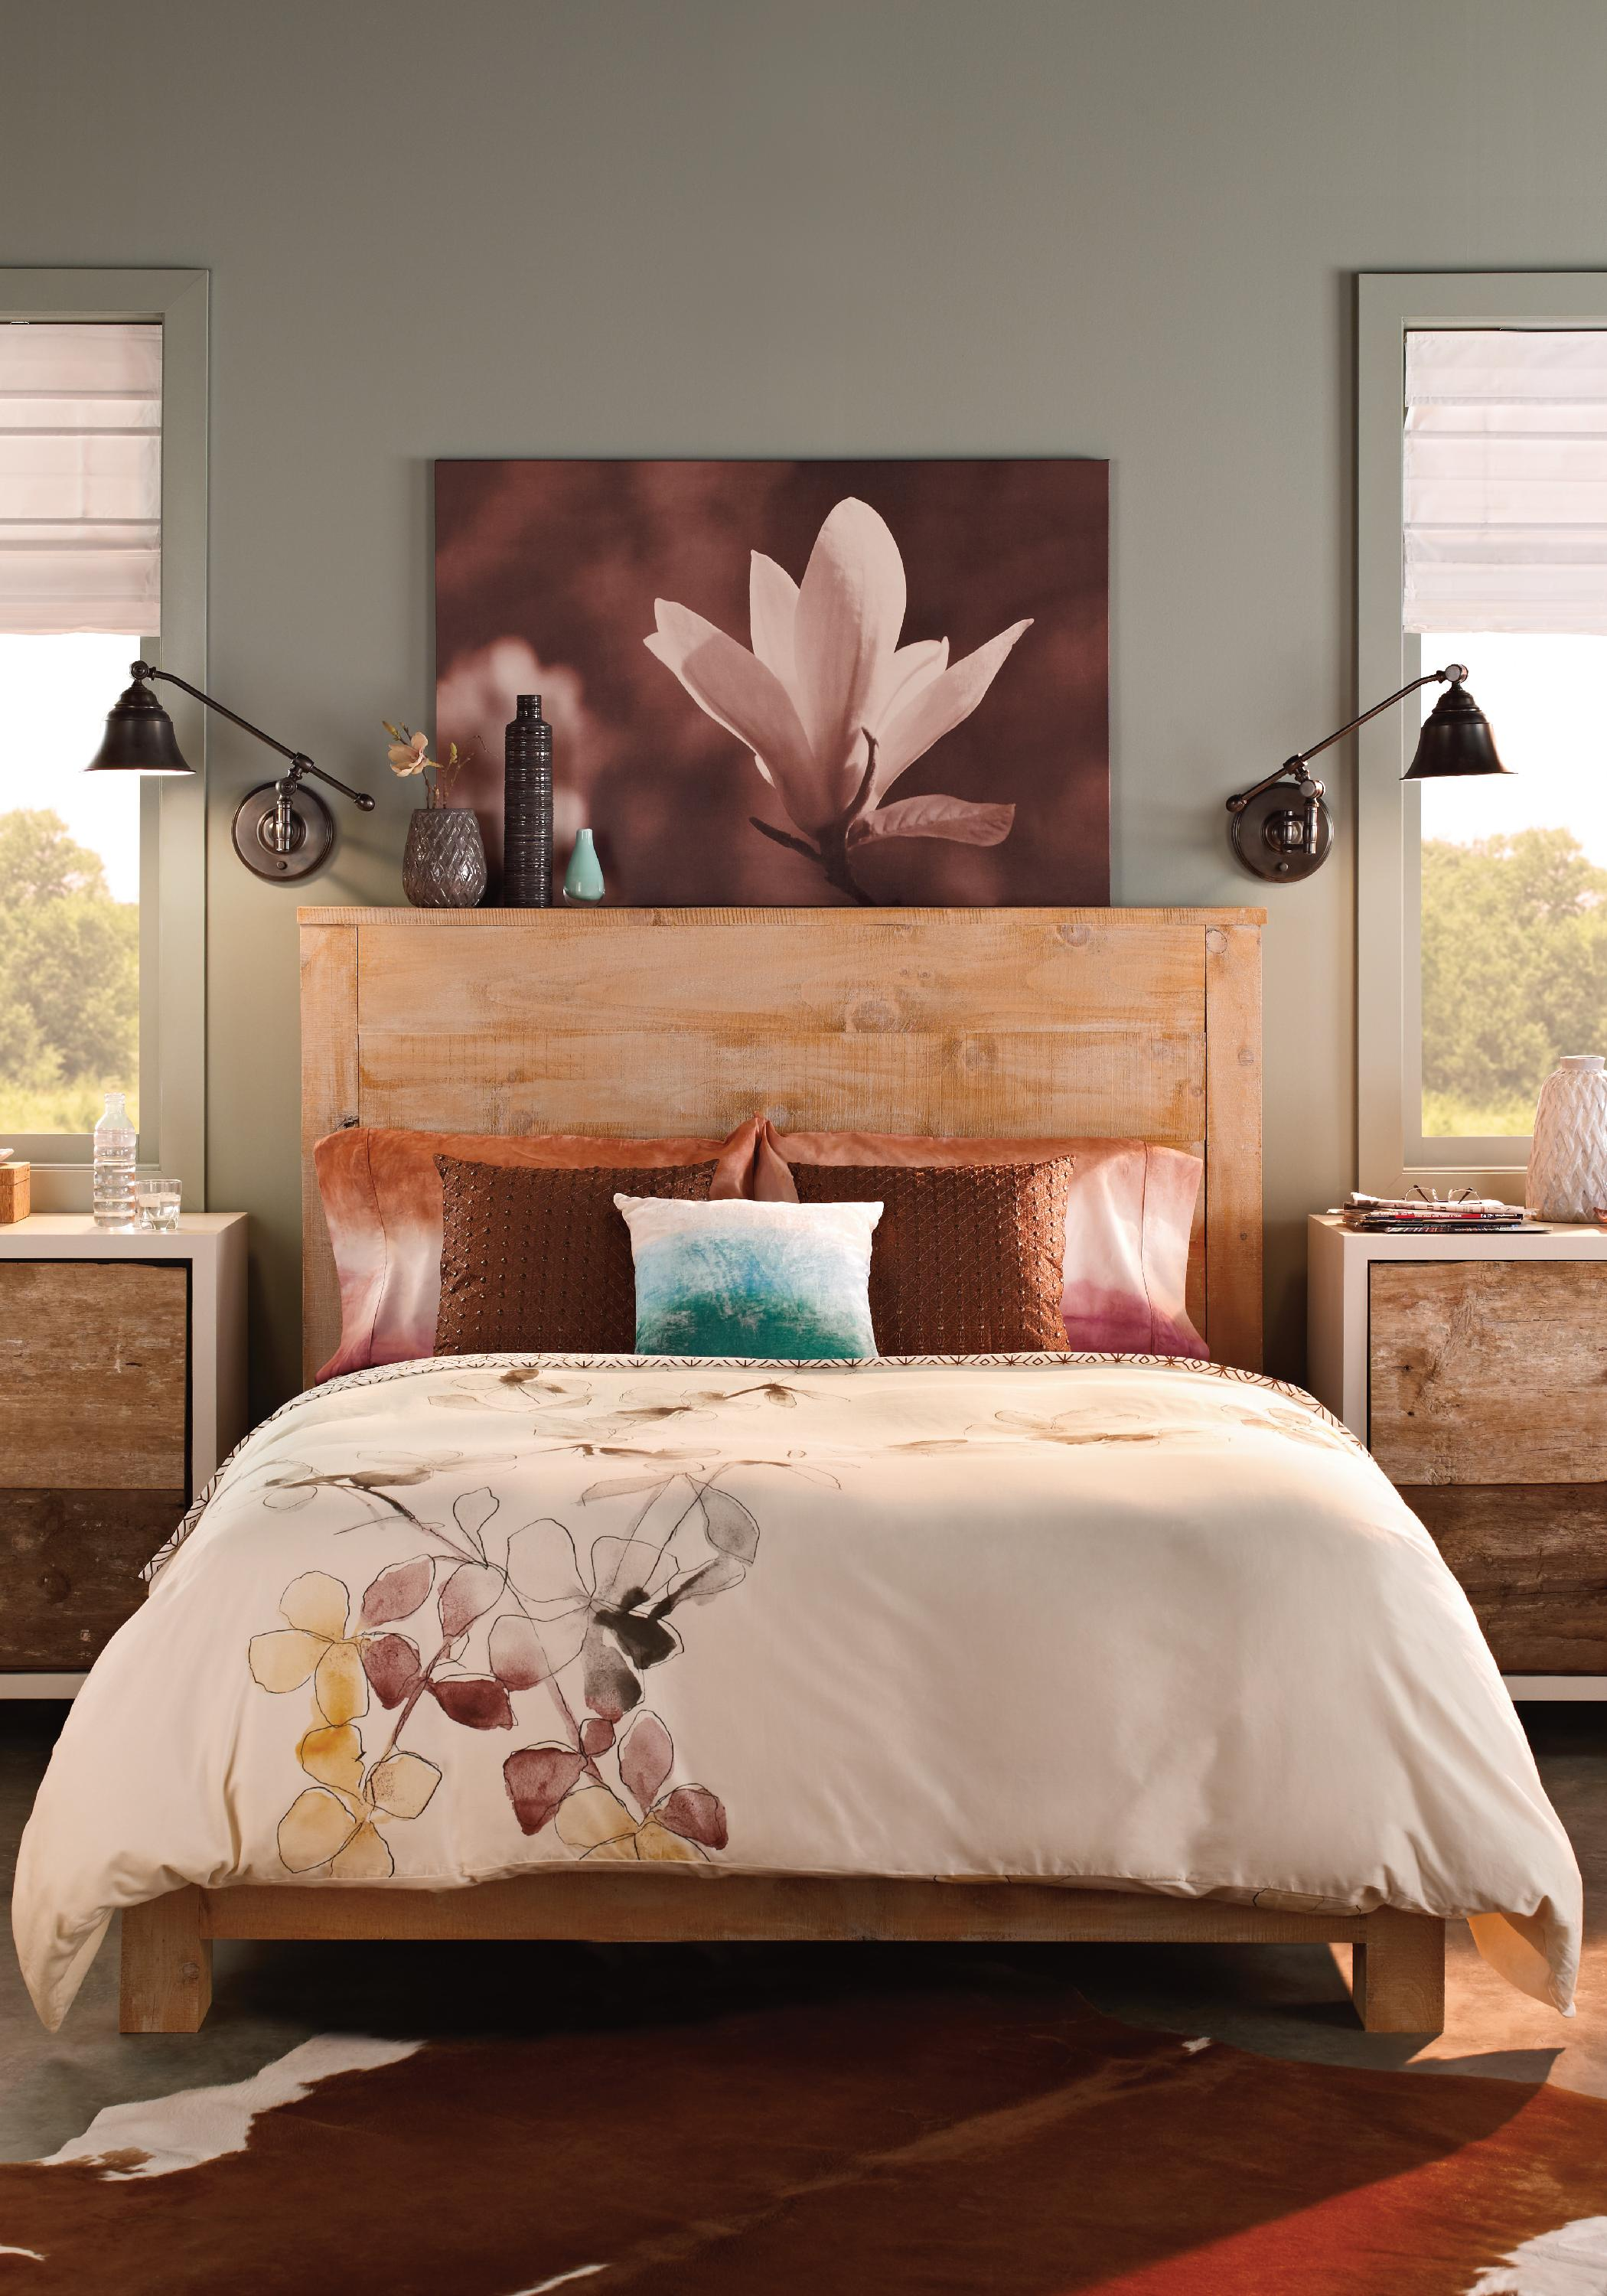 bedroom color behr Give your bedroom a makeover with BEHR paint in Artful Aqua to  3000 X 2100